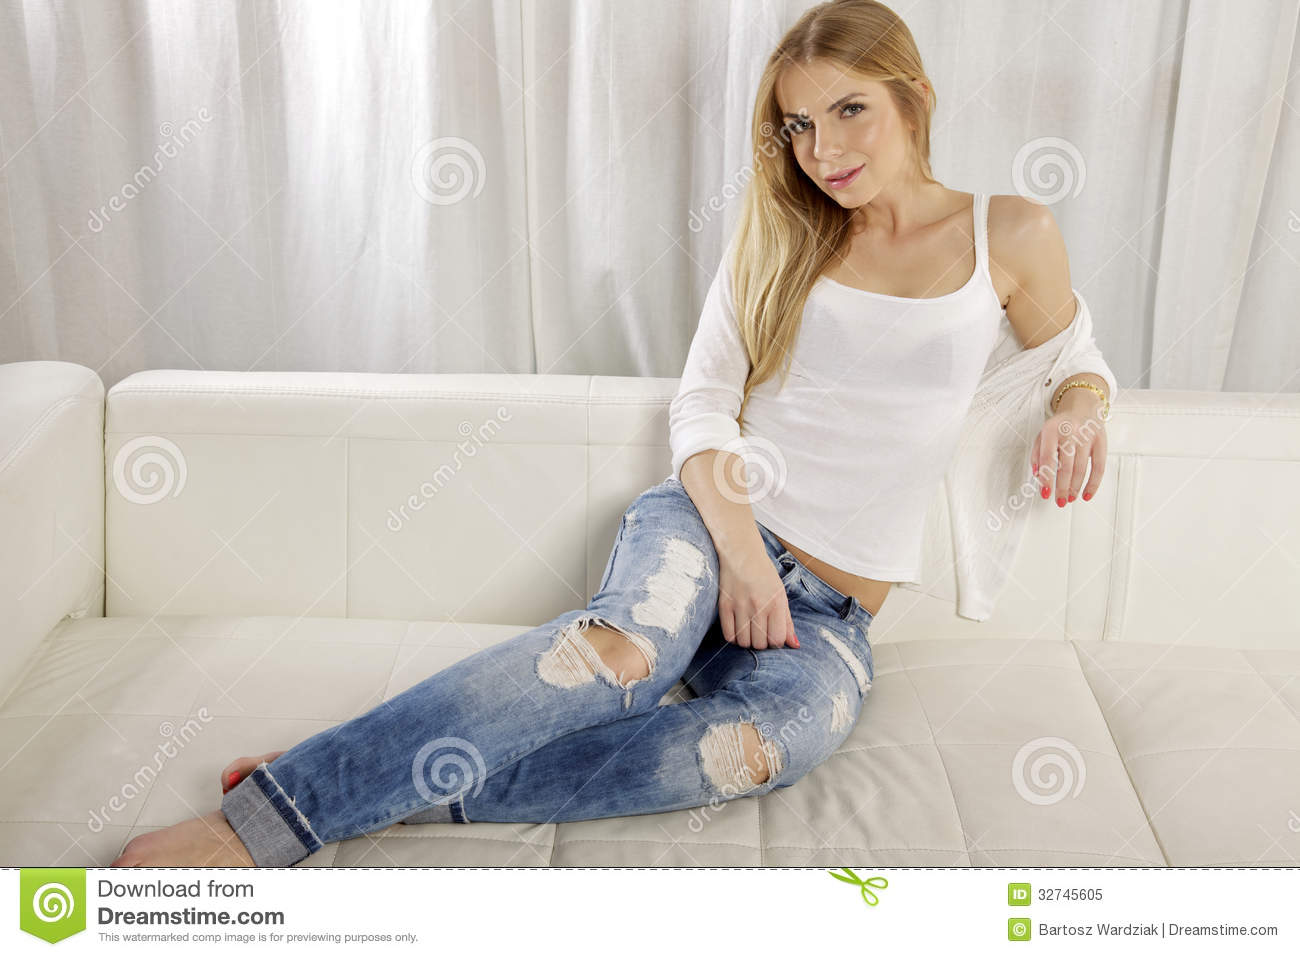 beautiful and attractive blonde woman posing in blue jeans